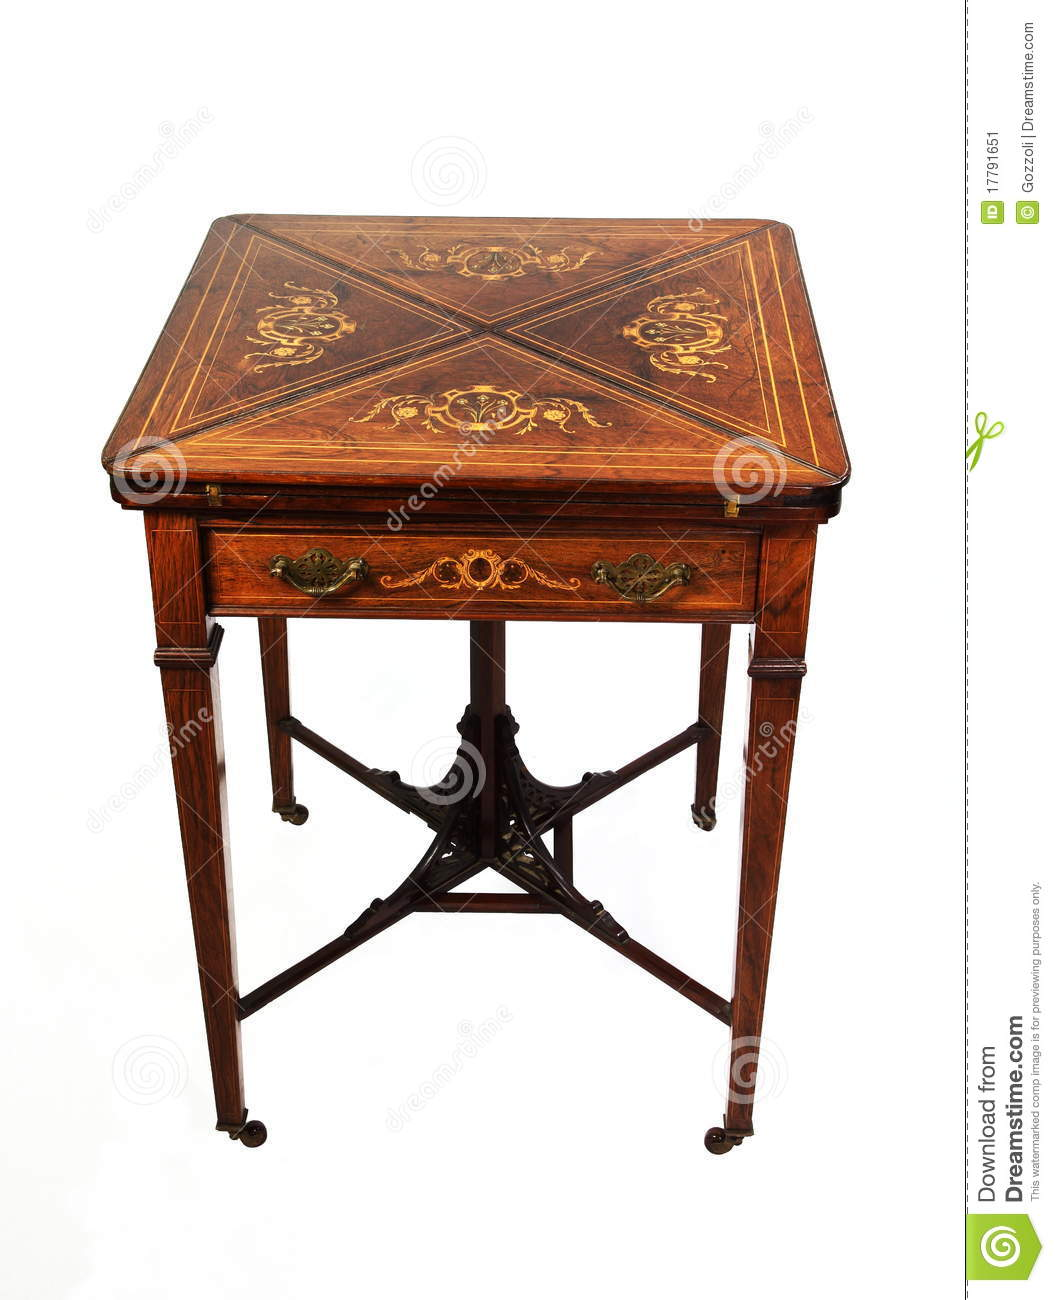 Antique Rosewood Card Table Stock Image Image Of Table Edwardian